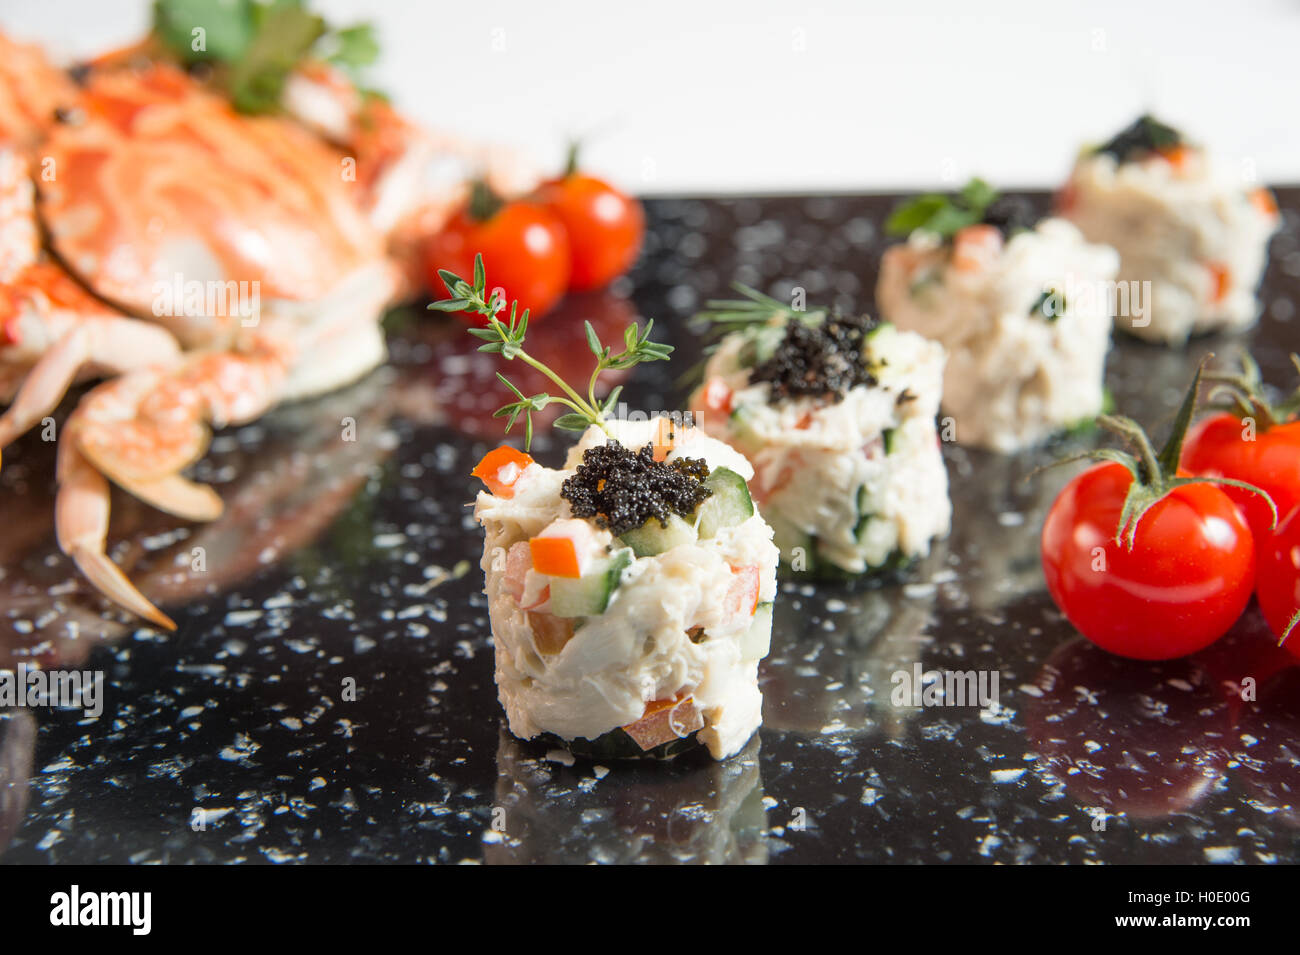 Crab Meat Salad with Black Caviar Horizontal tomato and crabs - Stock Image